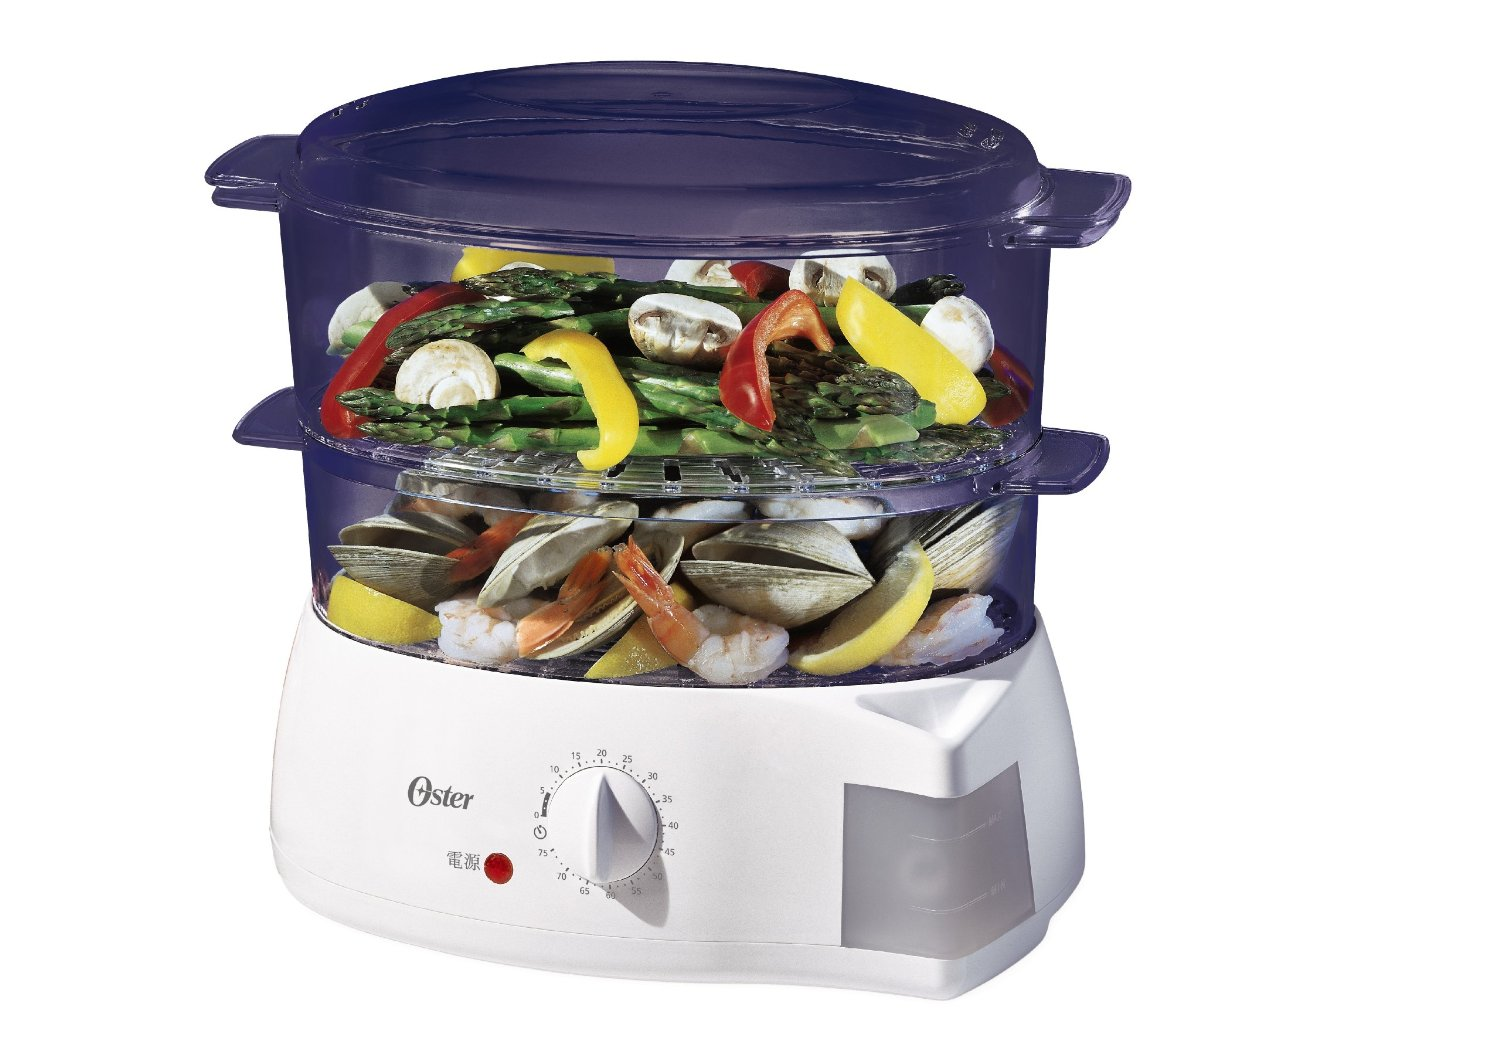 Best Food Steamer Brands